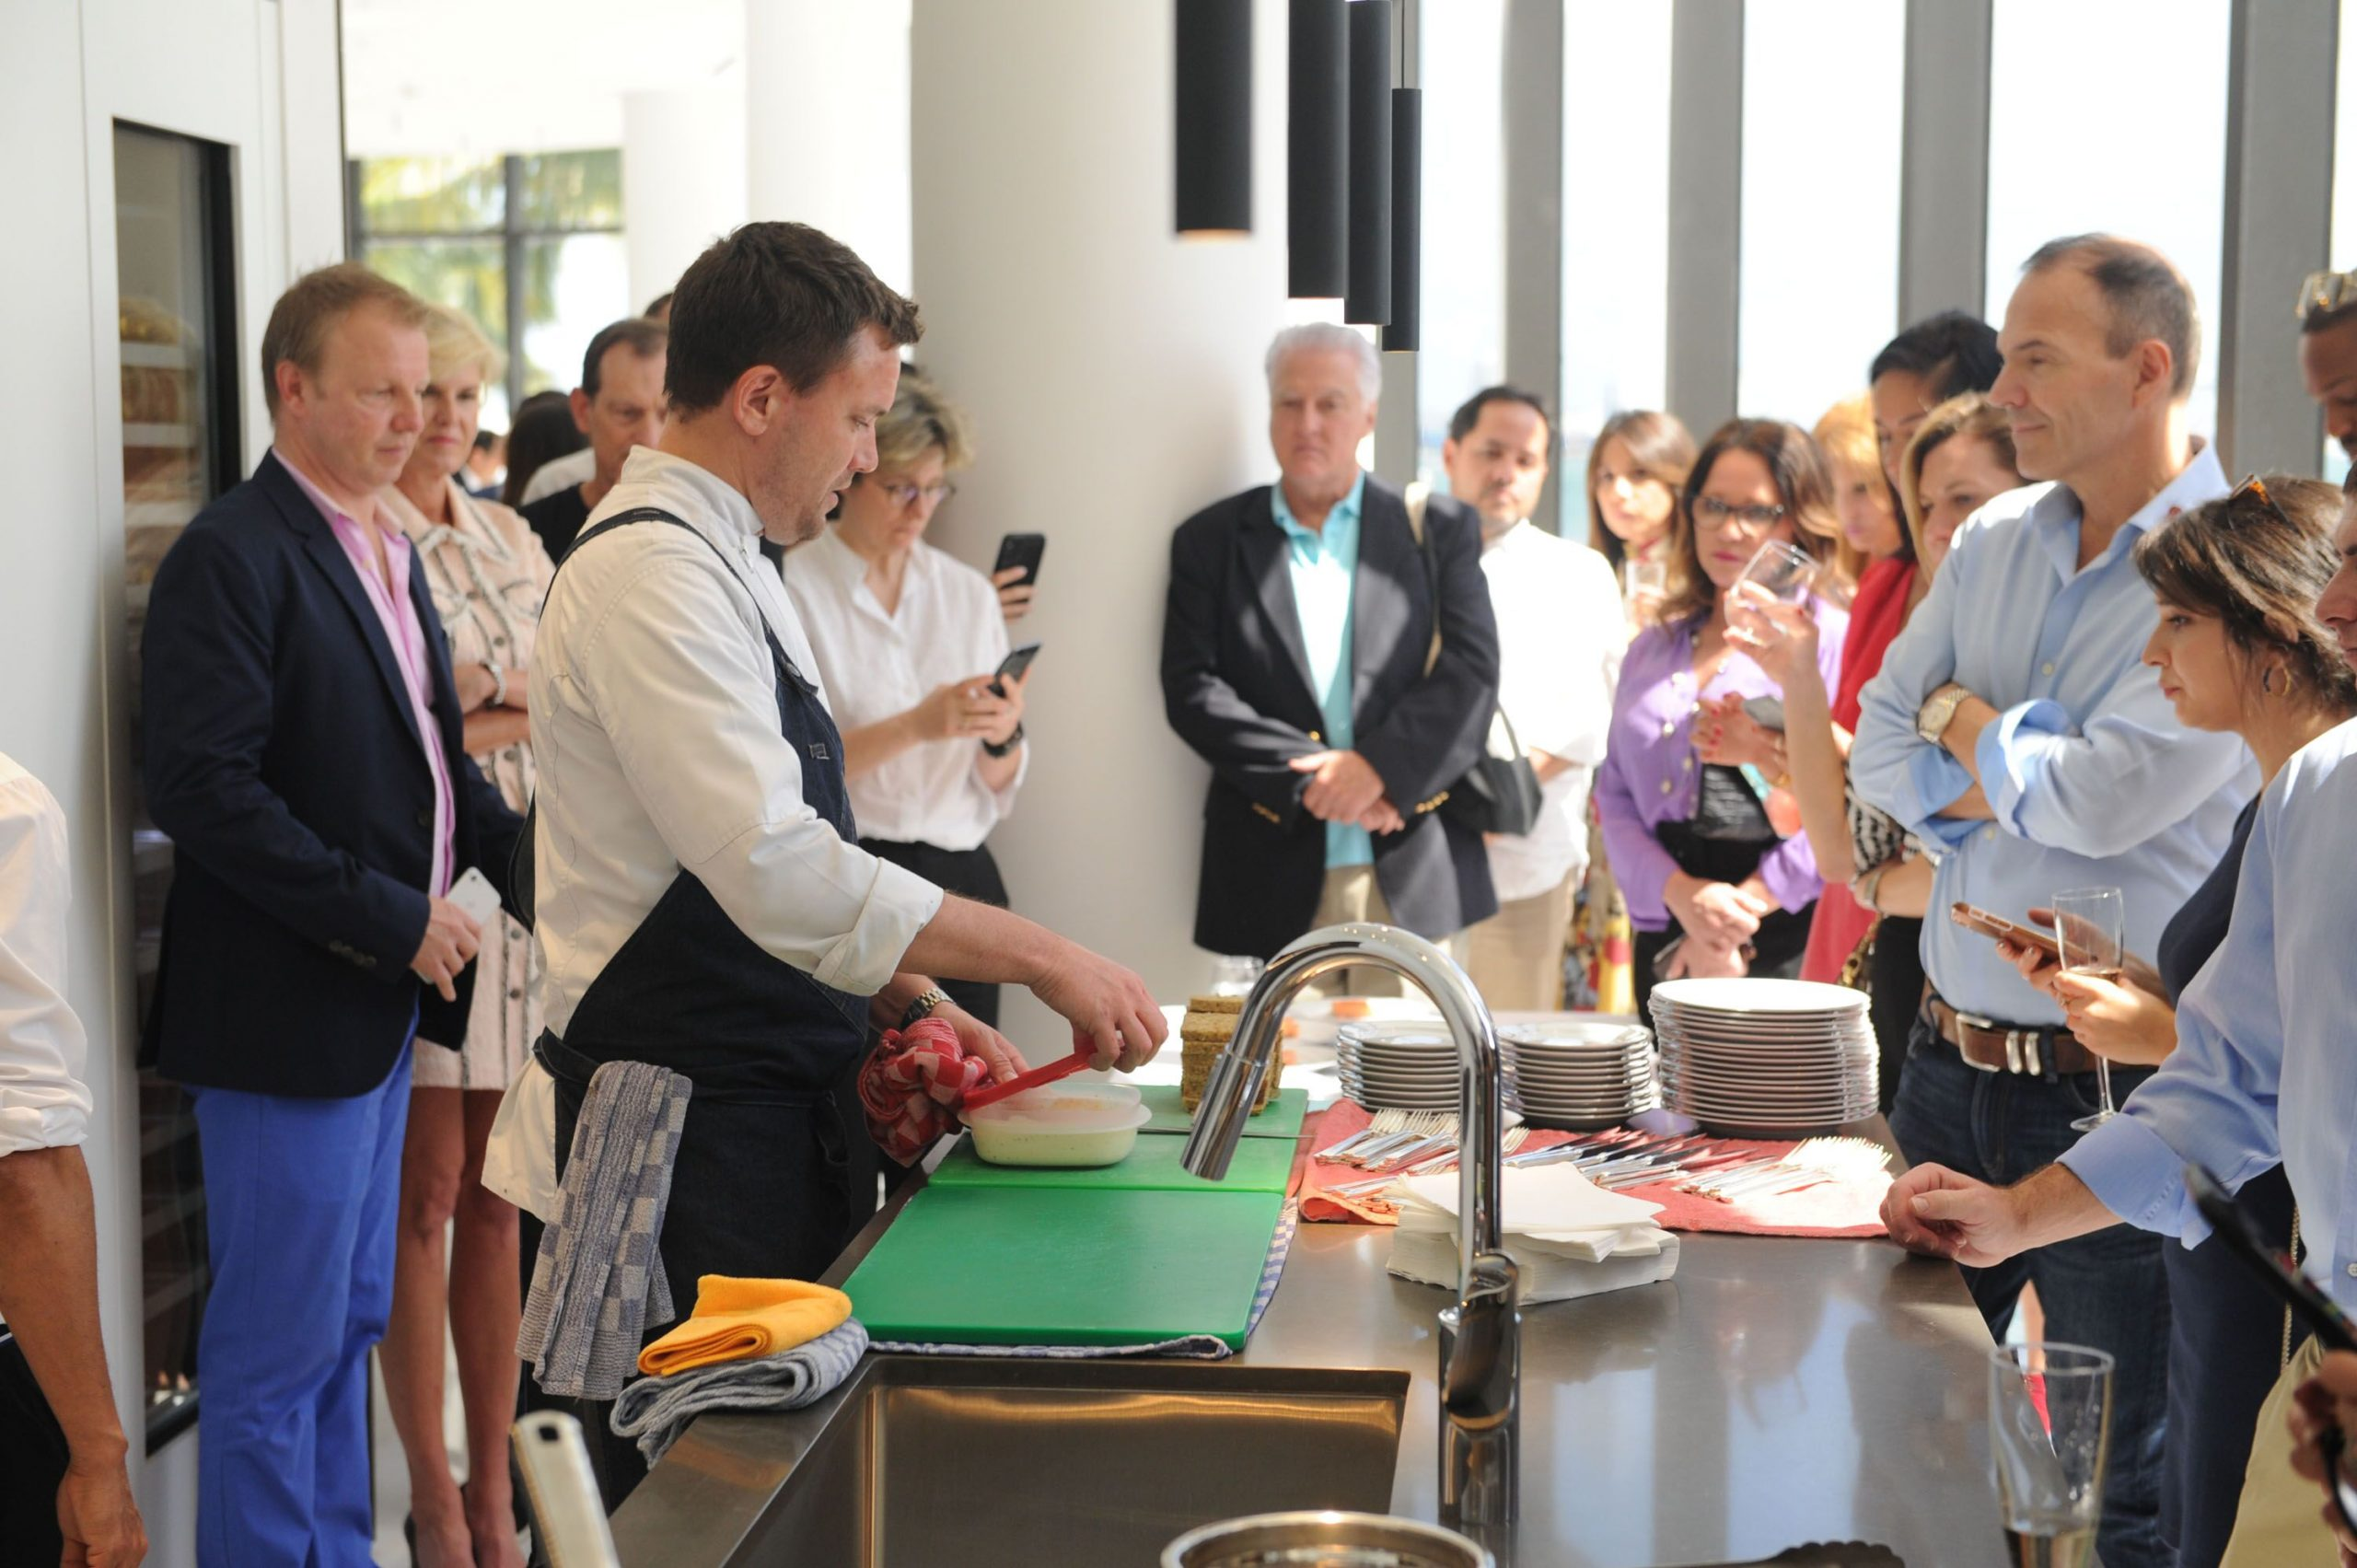 Intimate cooking demonstration kicks-off the annual week of Wine & Food festivities